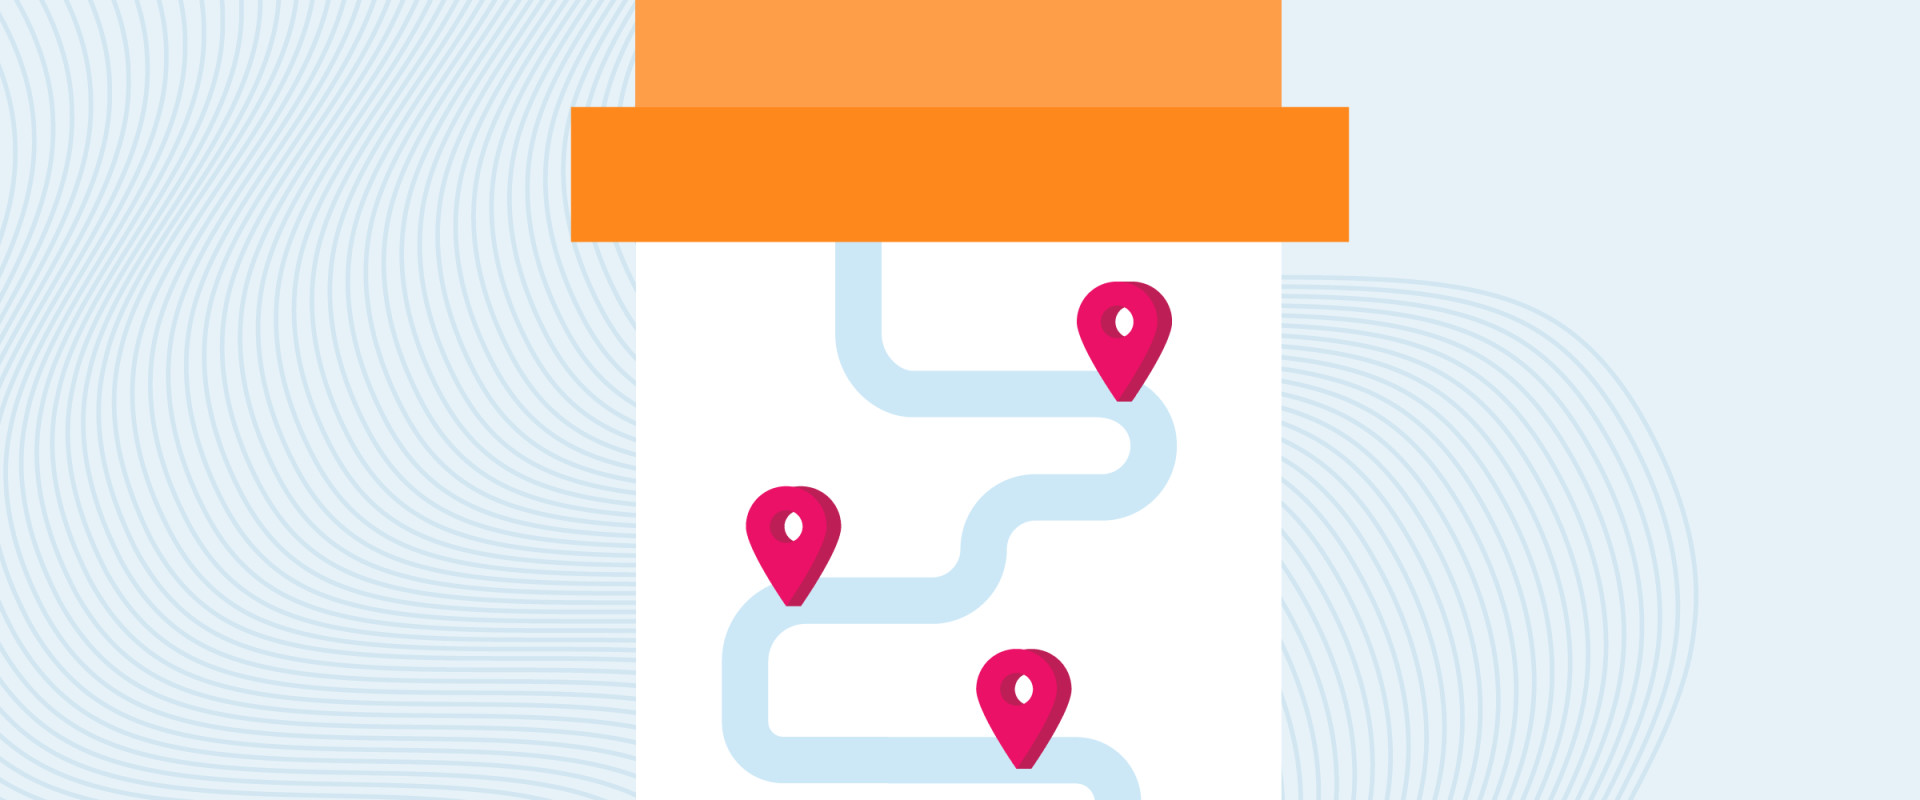 Preserving Trusted Brand Prescribing Through the Patient Journey